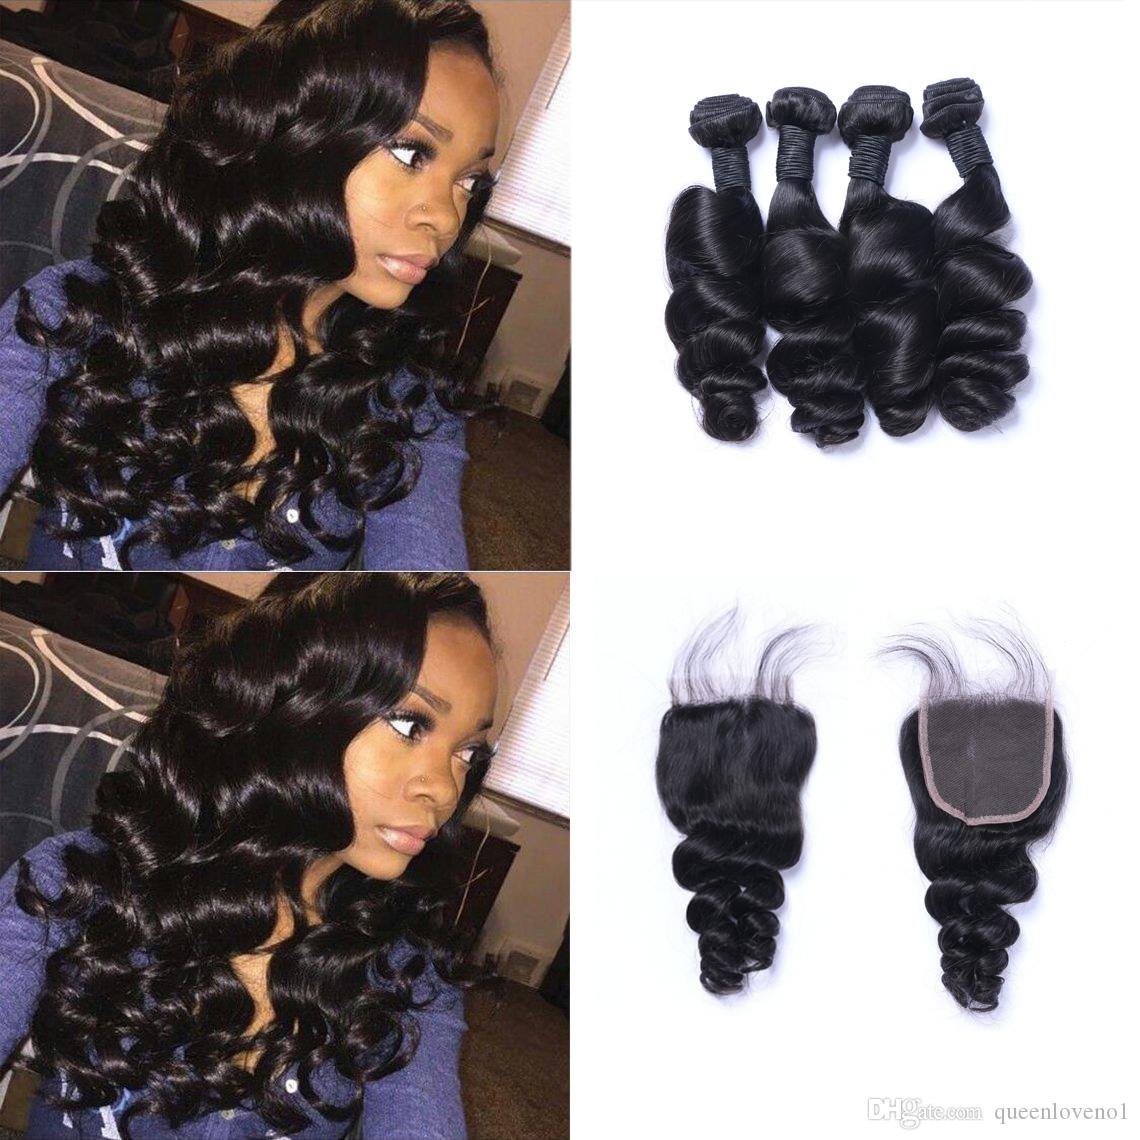 4 Bundles Malaysian Curly Hair With Lace Closure #27 Honey Blonde Bundles With Closure 100% Human Hair Extensions Double Weft Durable Service 3/4 Bundles With Closure Hair Extensions & Wigs